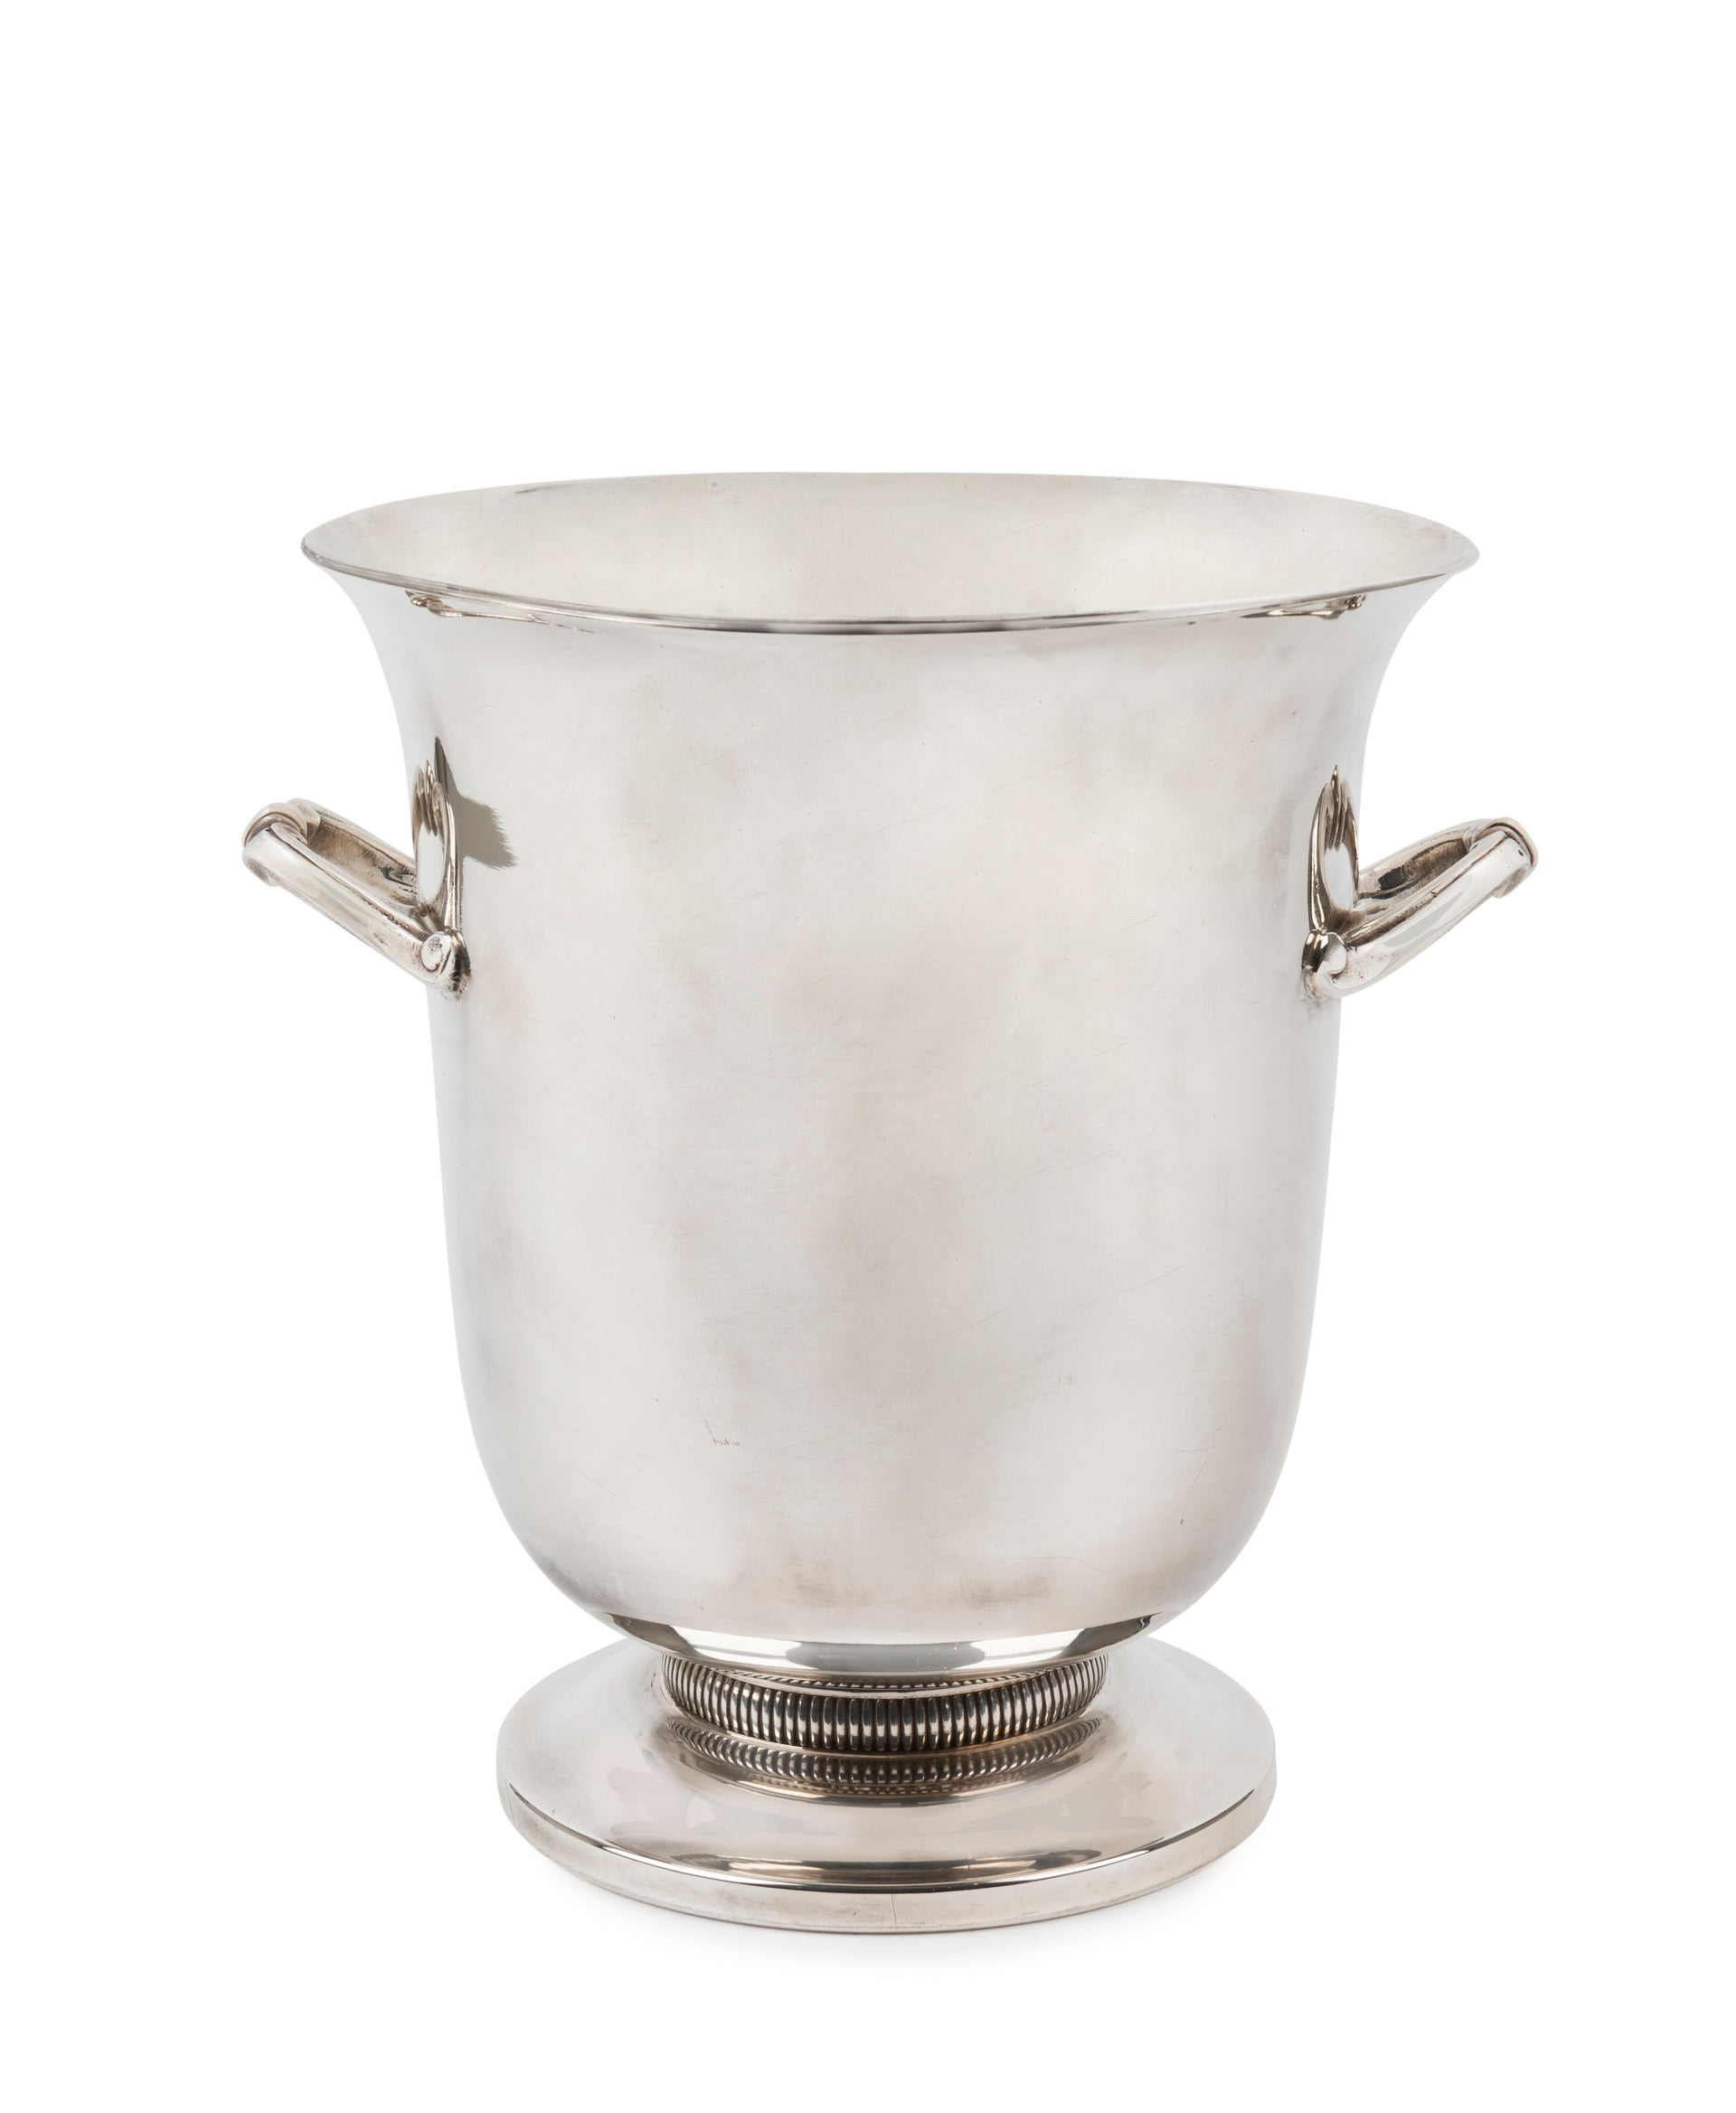 SOLD A French vintage silver plated twin handled wine cooler